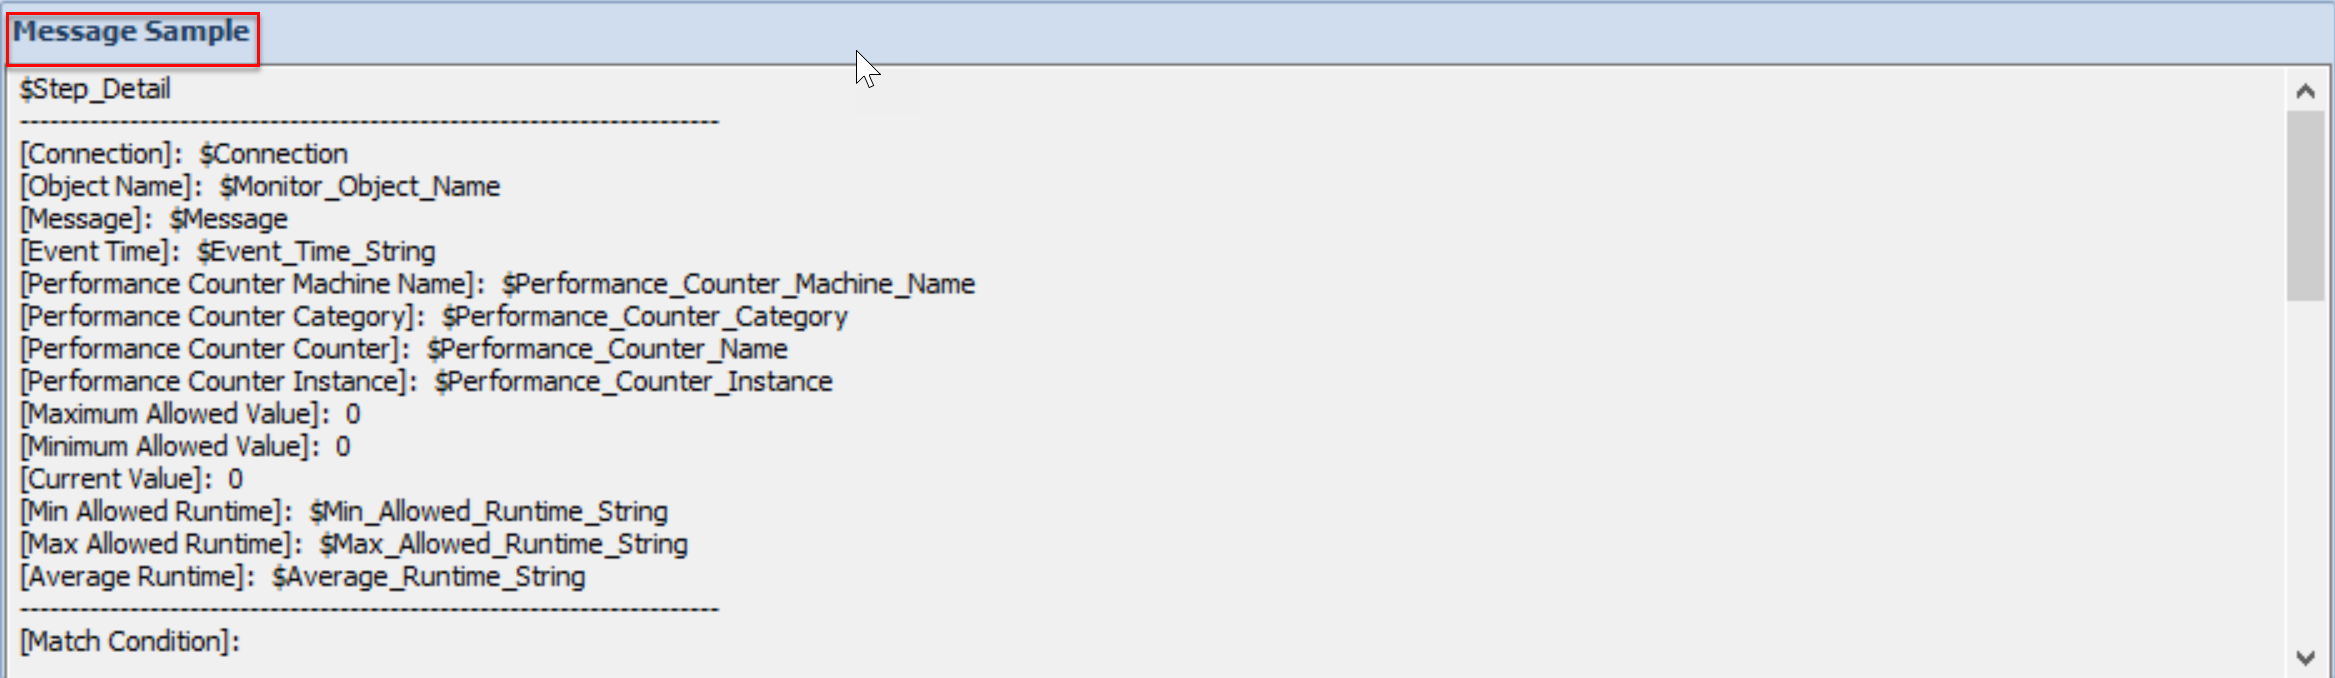 SentryOne Message Editor Message Sample pane